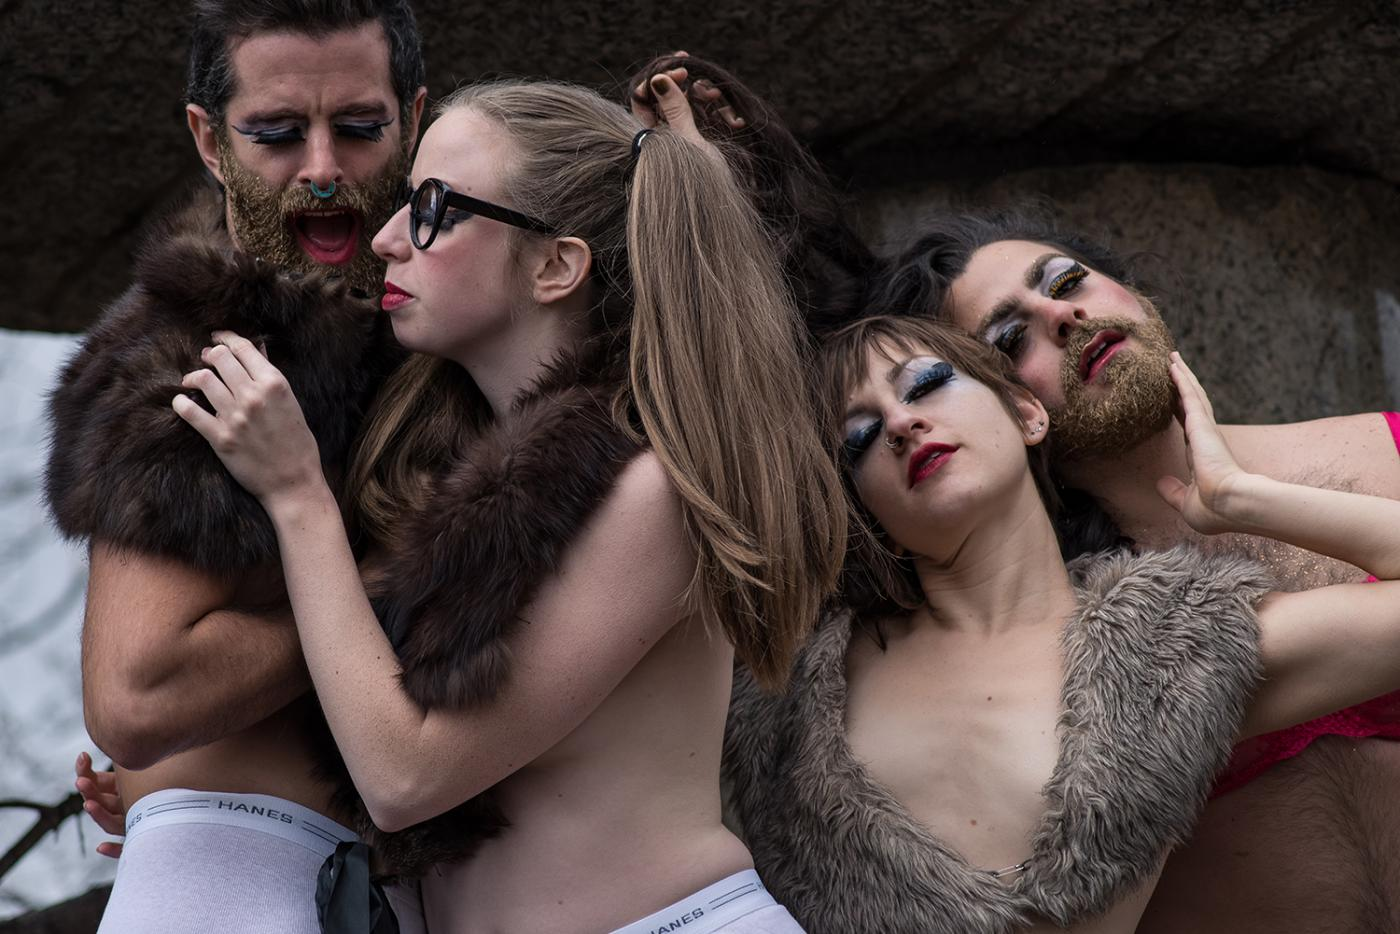 Four dancers, in mens briefs and fur shawls, caress each other.